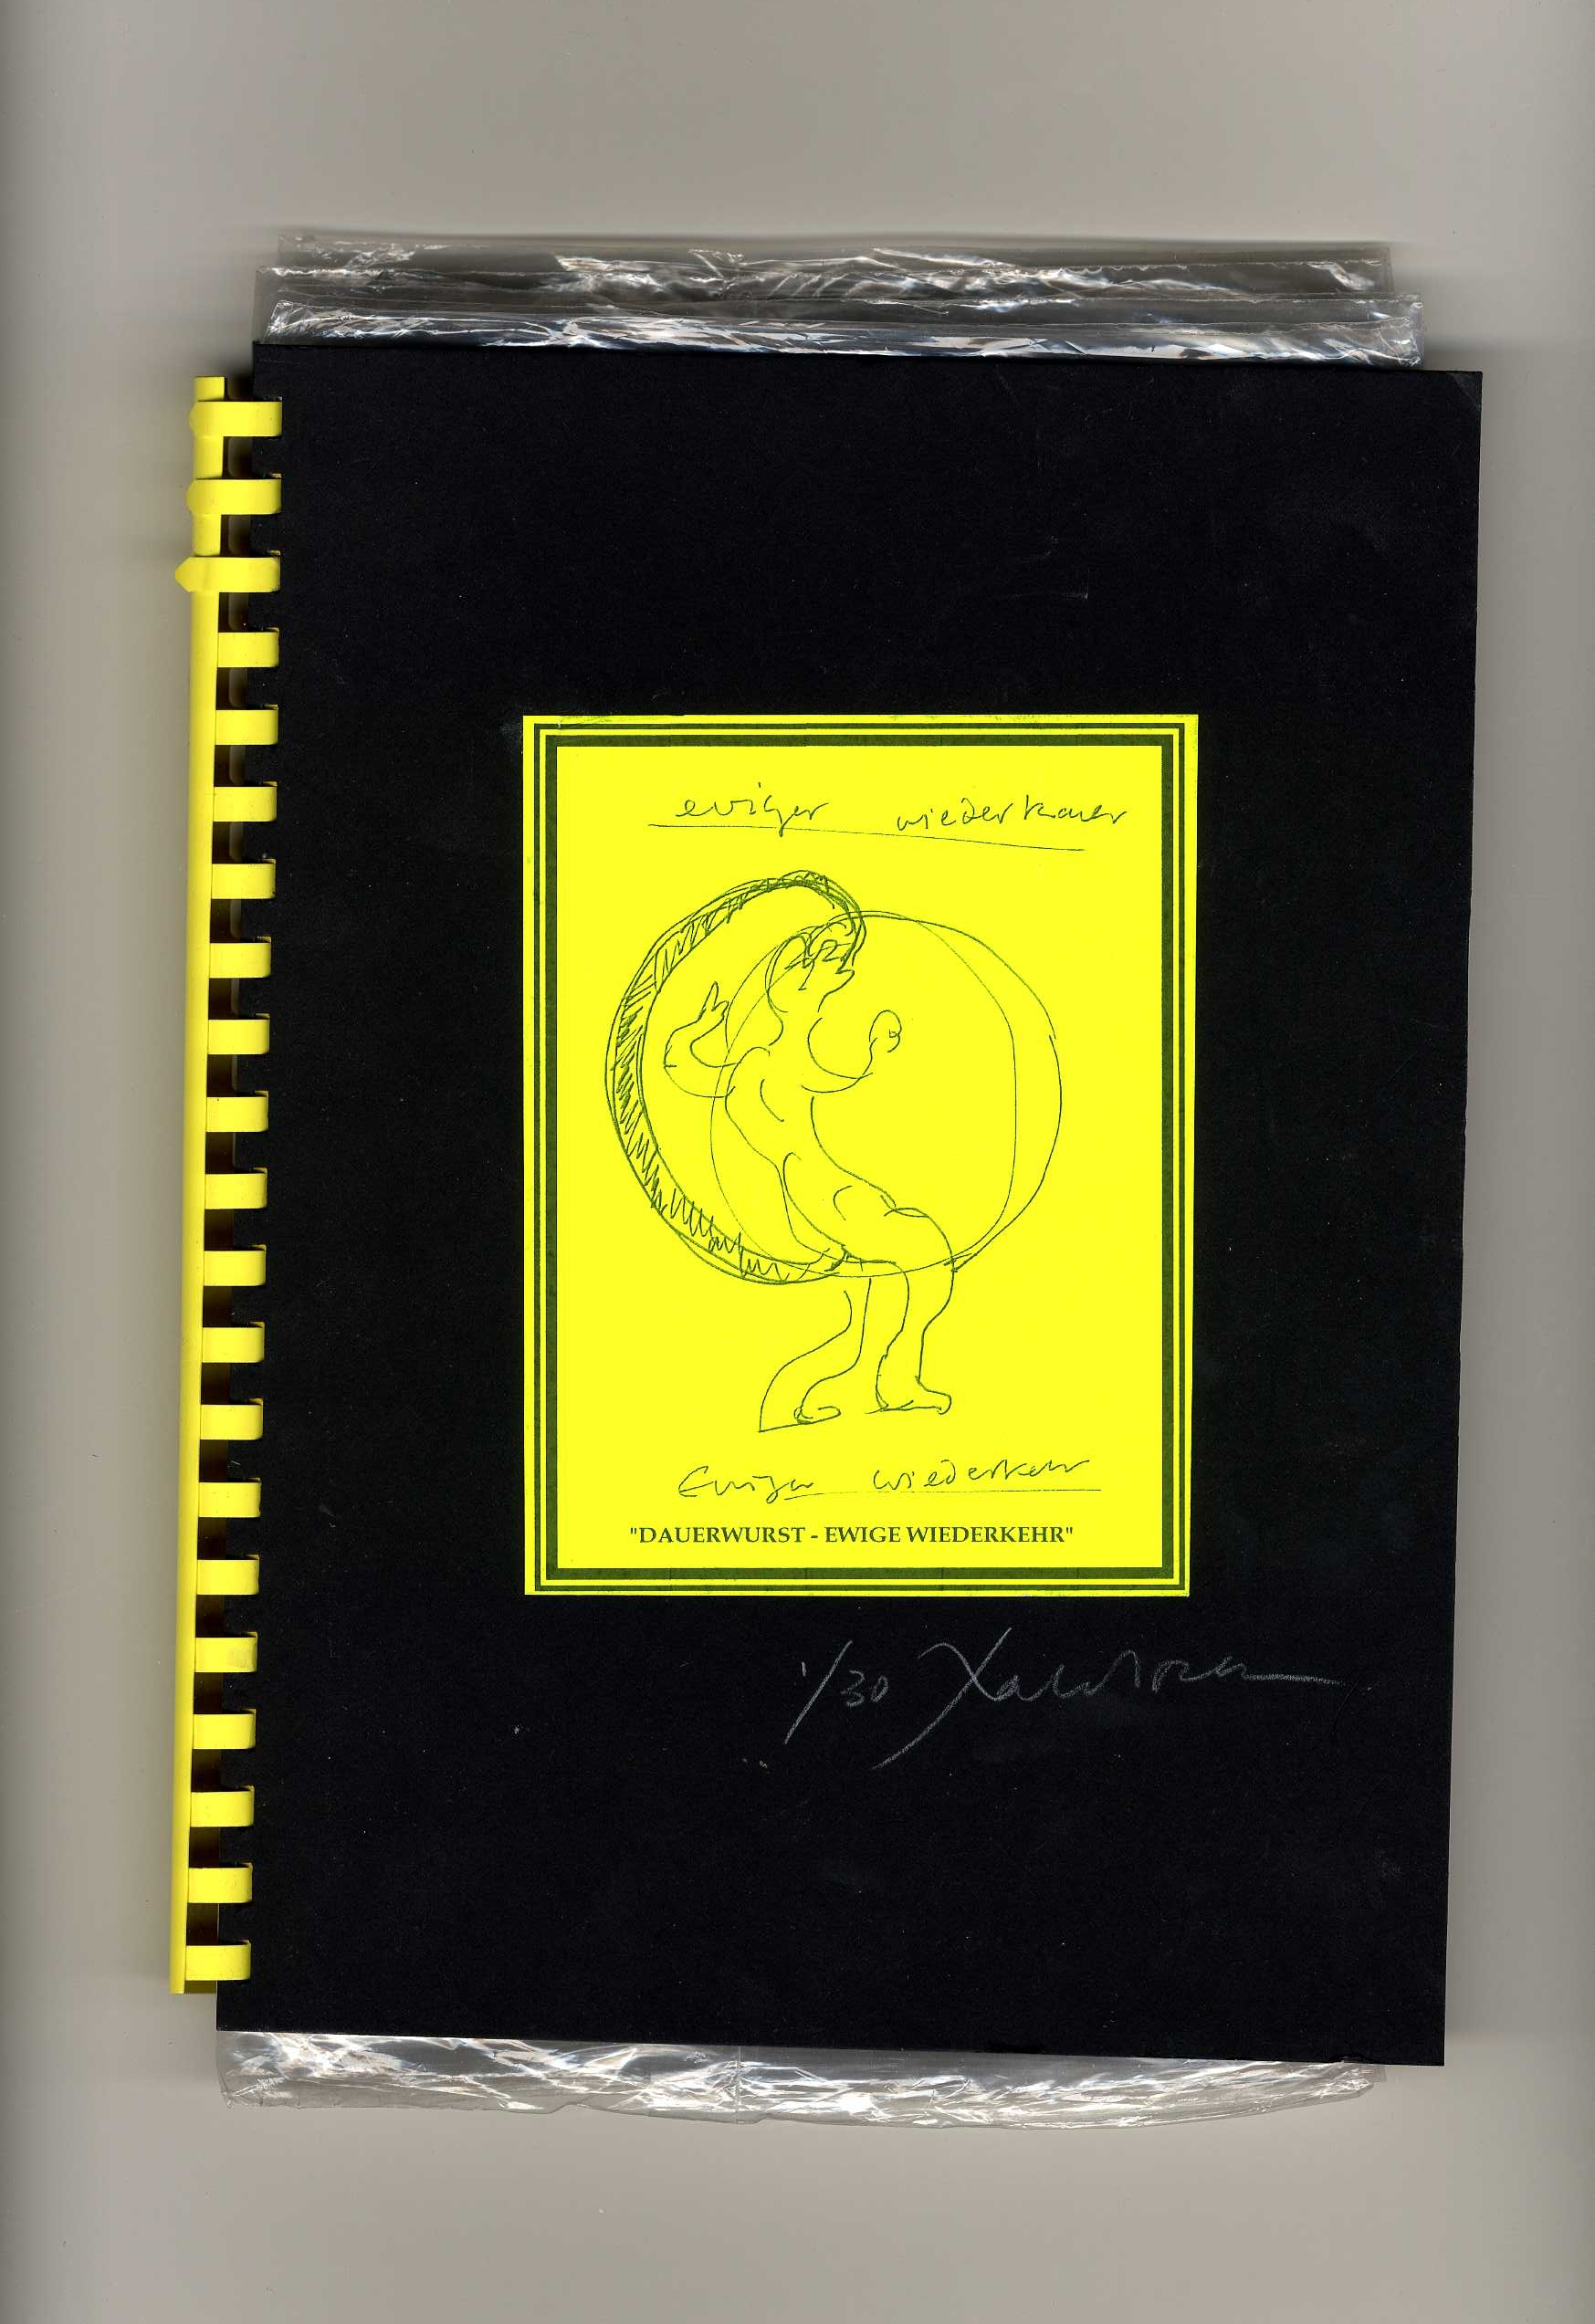 Where Can I get my dissertation spiral bound? I live in london.?